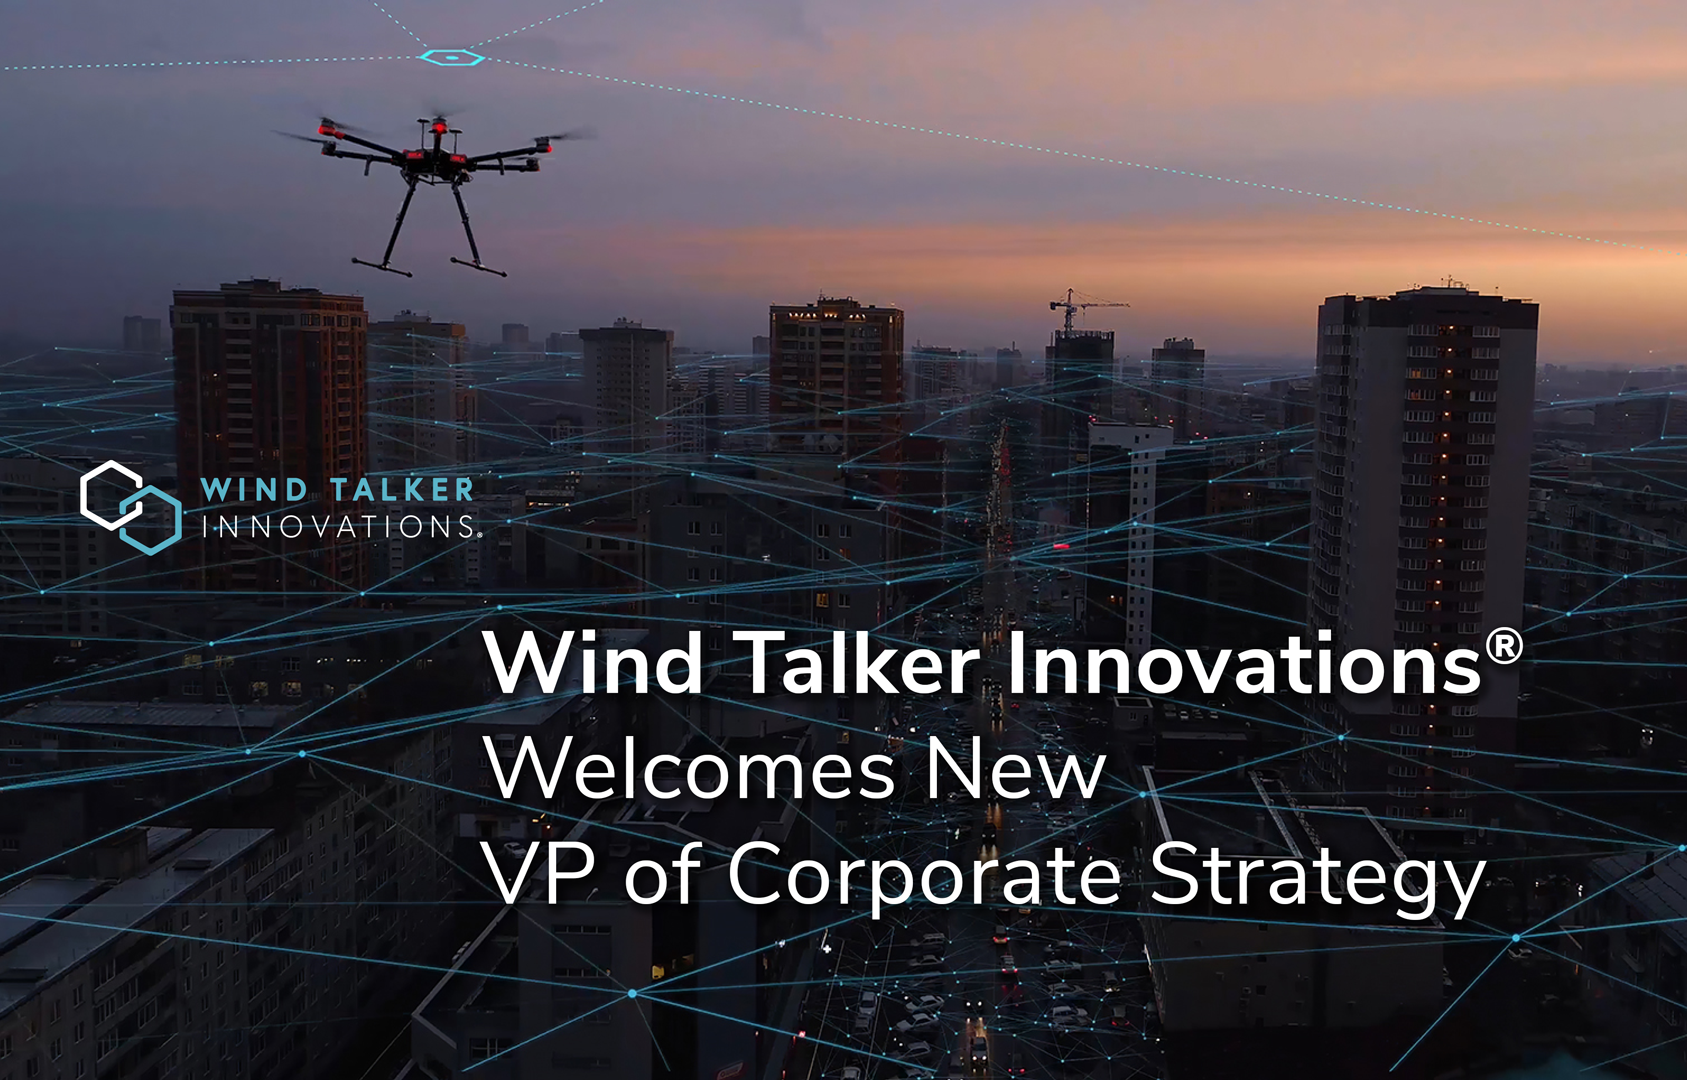 Wind Talker Innovations®Welcomes New VP of Corporate Strategy